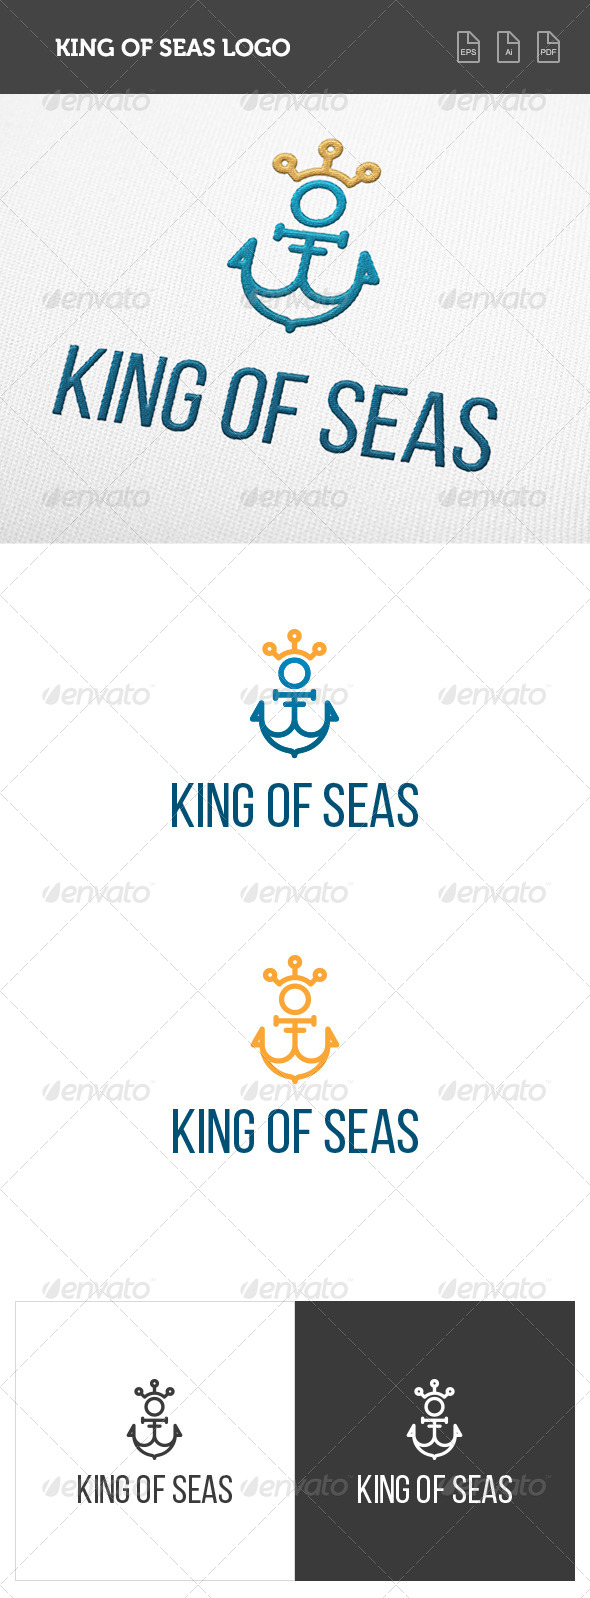 GraphicRiver King of Seas Logo 8419282